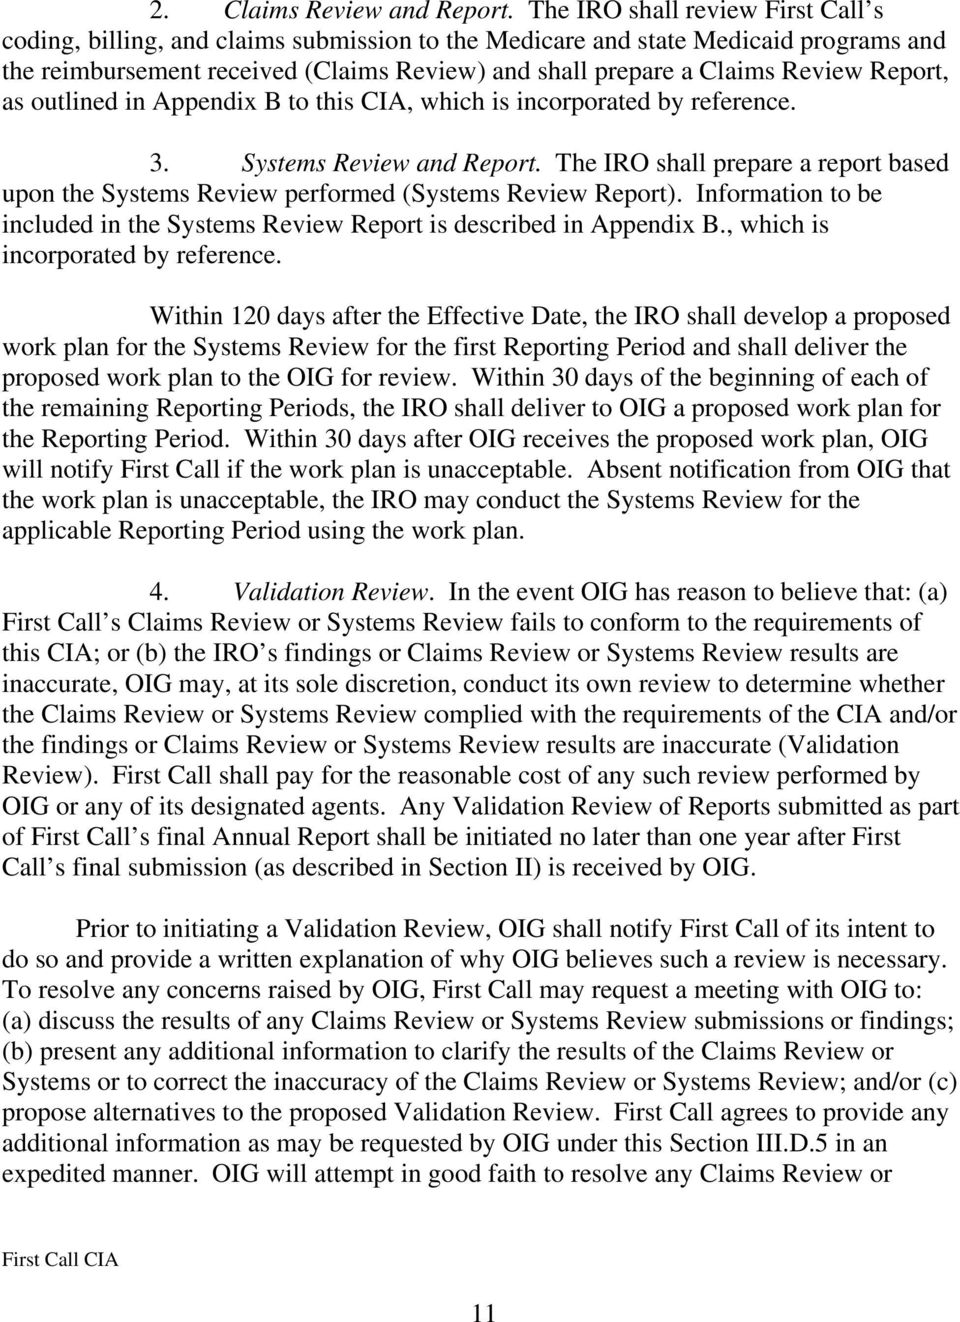 Report, as outlined in Appendix B to this CIA, which is incorporated by reference. 3. Systems Review and Report.